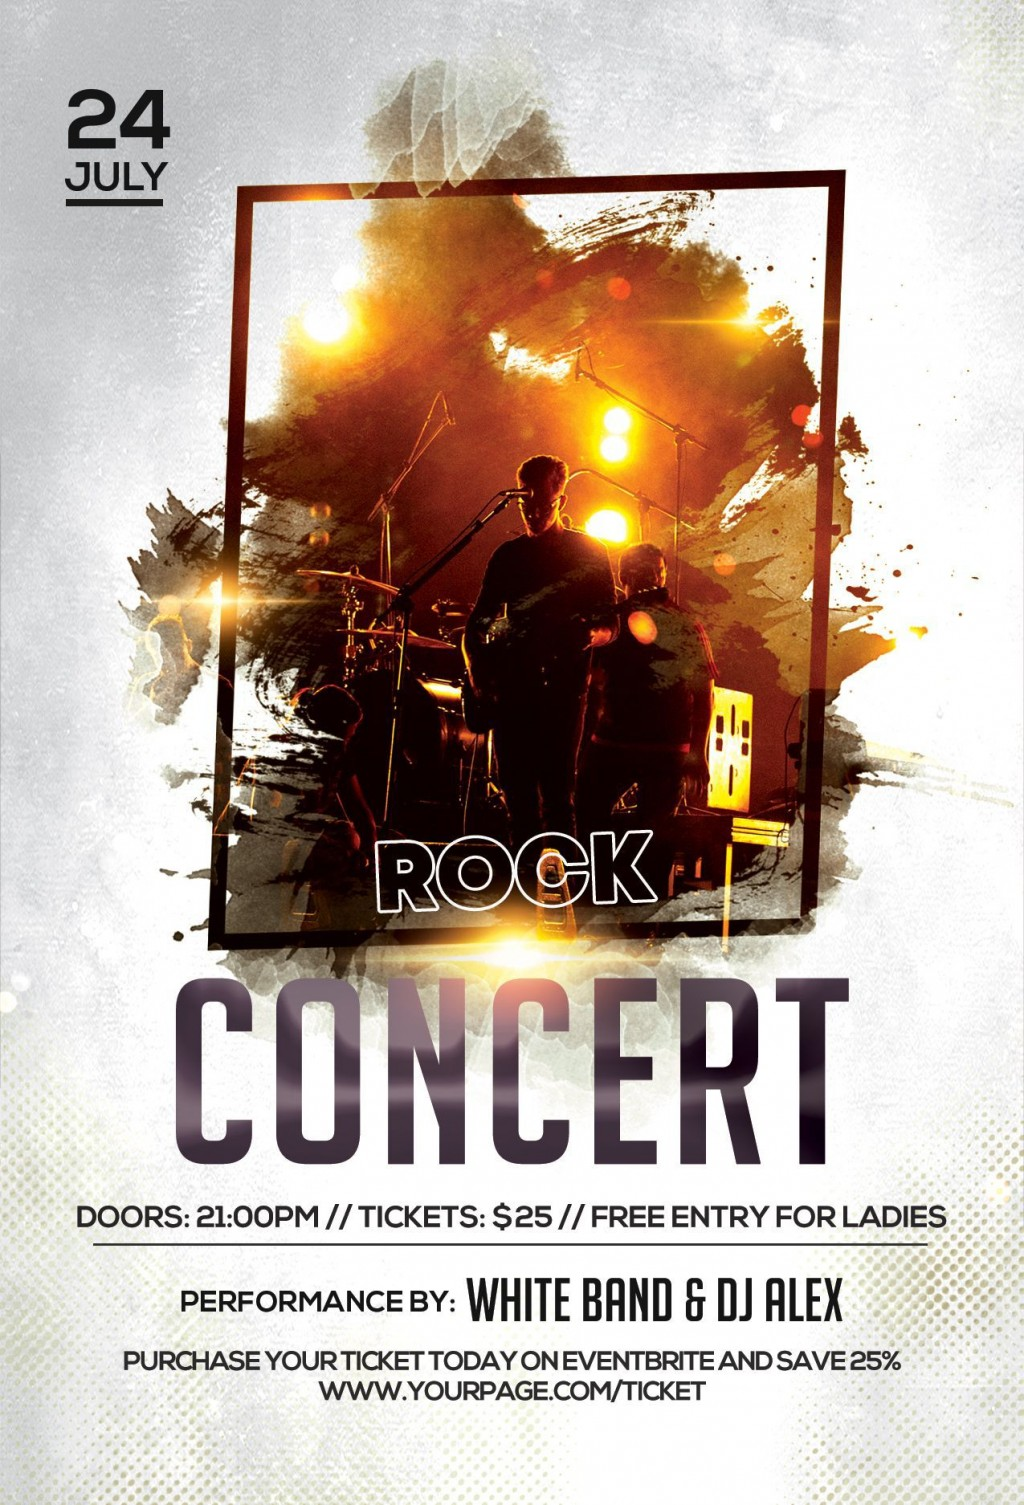 002 Fantastic Free Photoshop Concert Poster Template Highest Clarity  TemplatesLarge